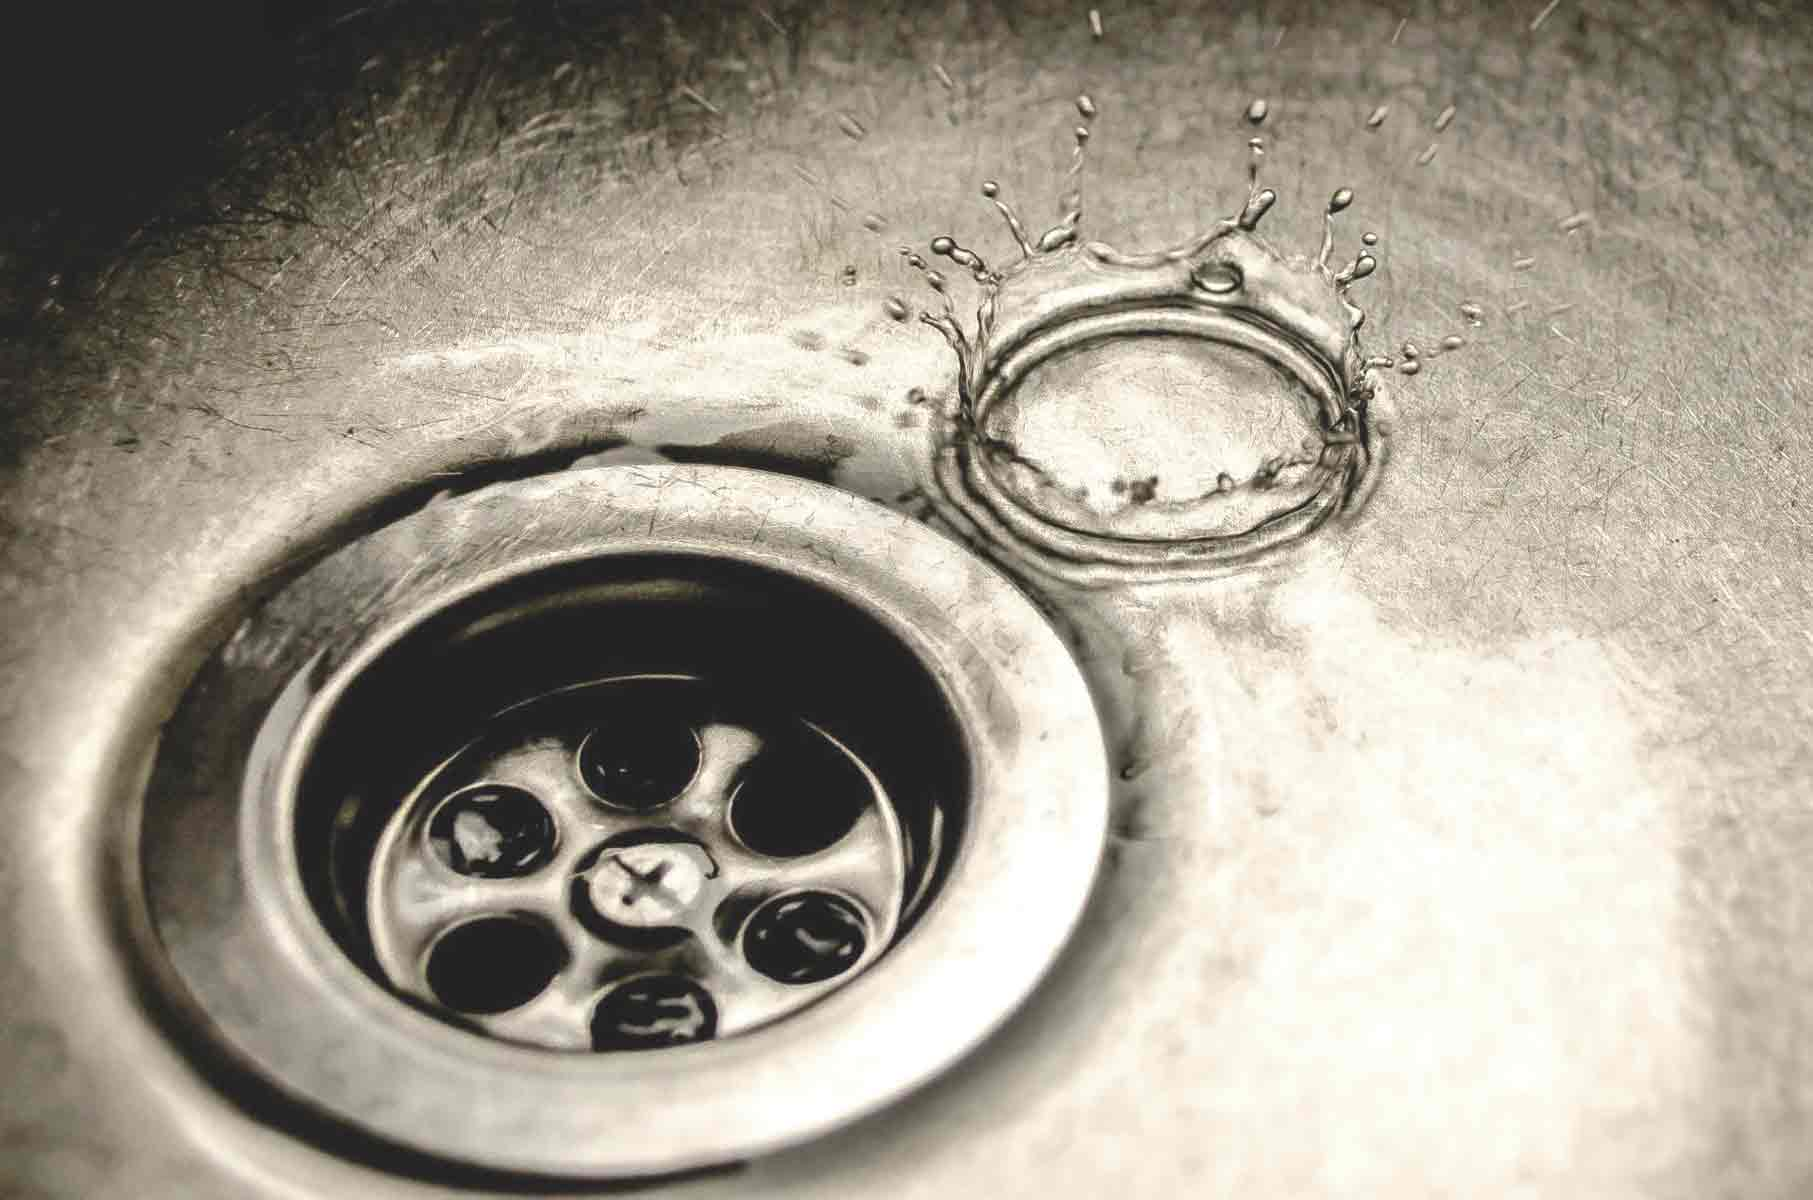 drain sink image for drain cleaning services page